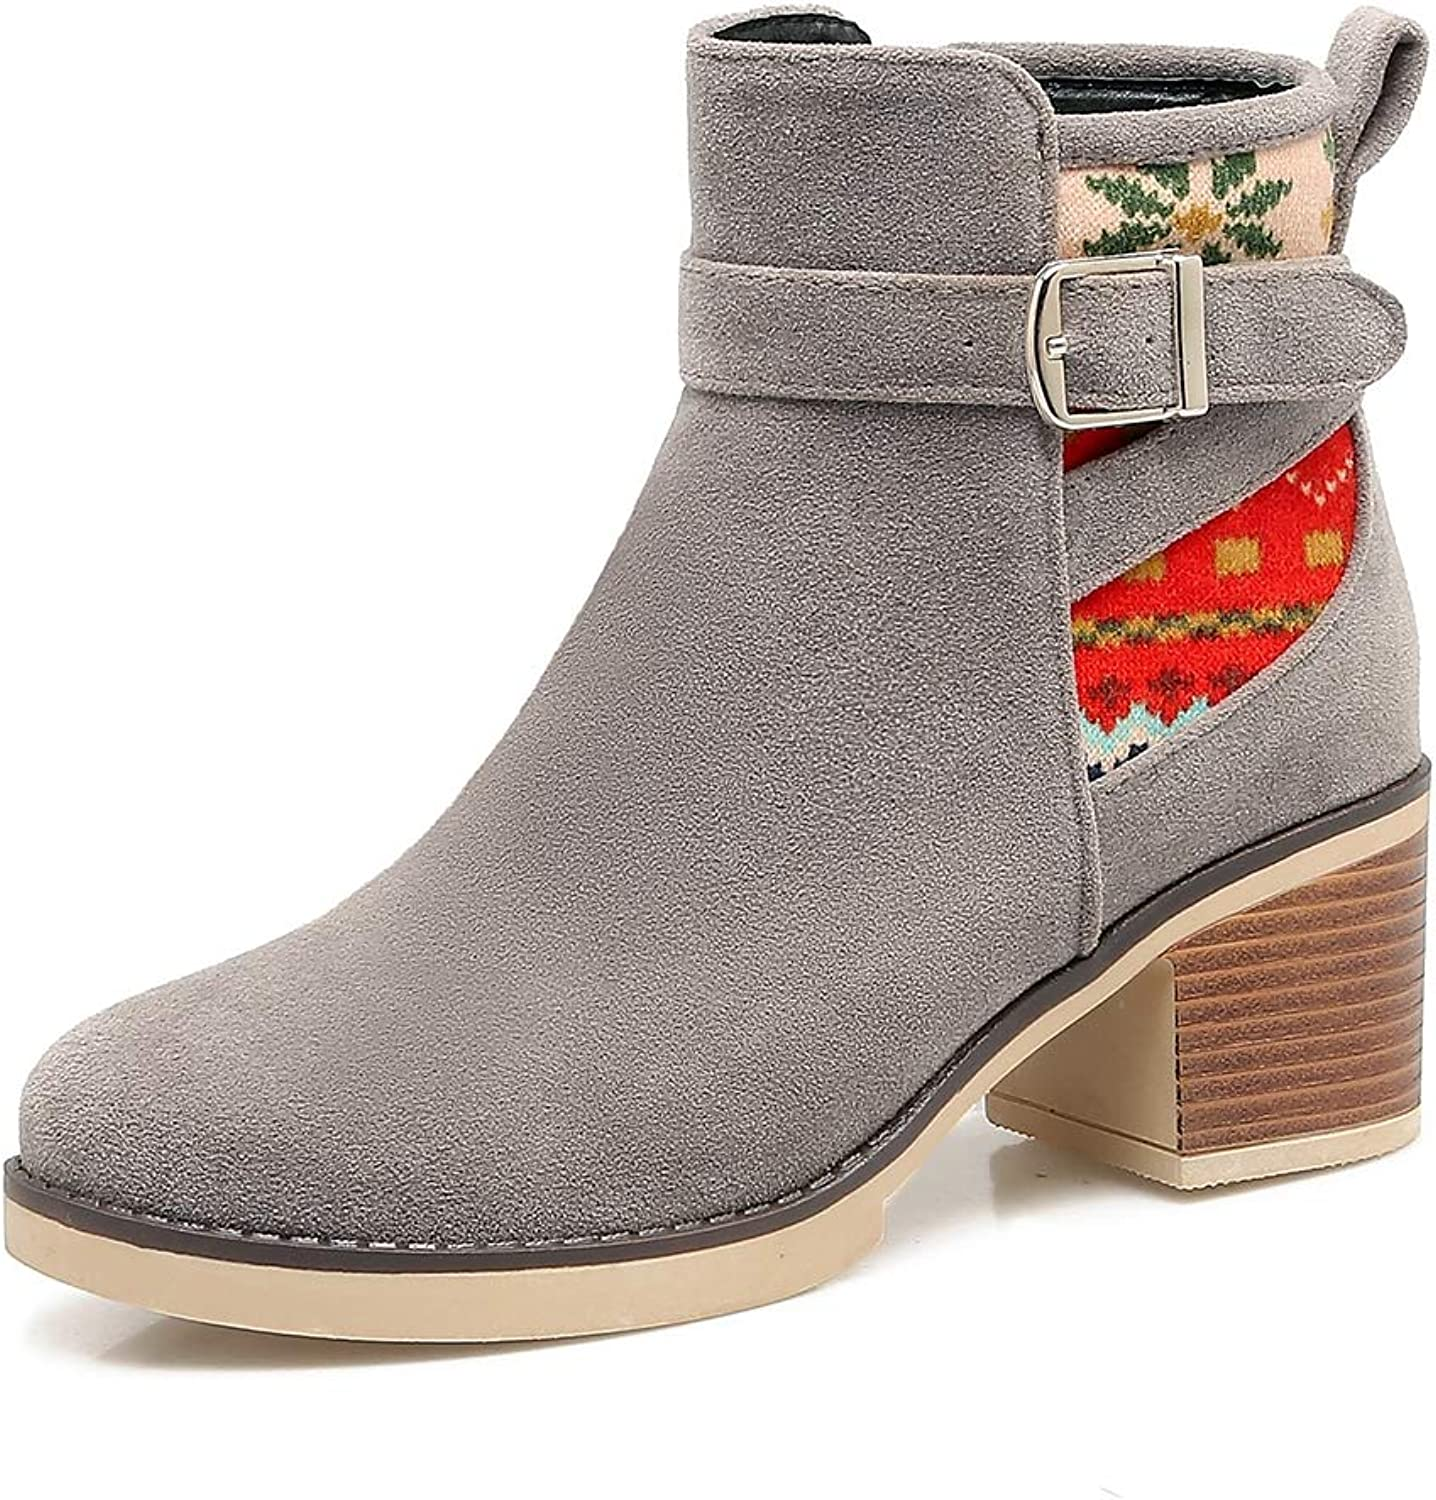 Cowboy Booties for Women Round Toe Square Chunky Heels Zip Side Printed Ankle Boots